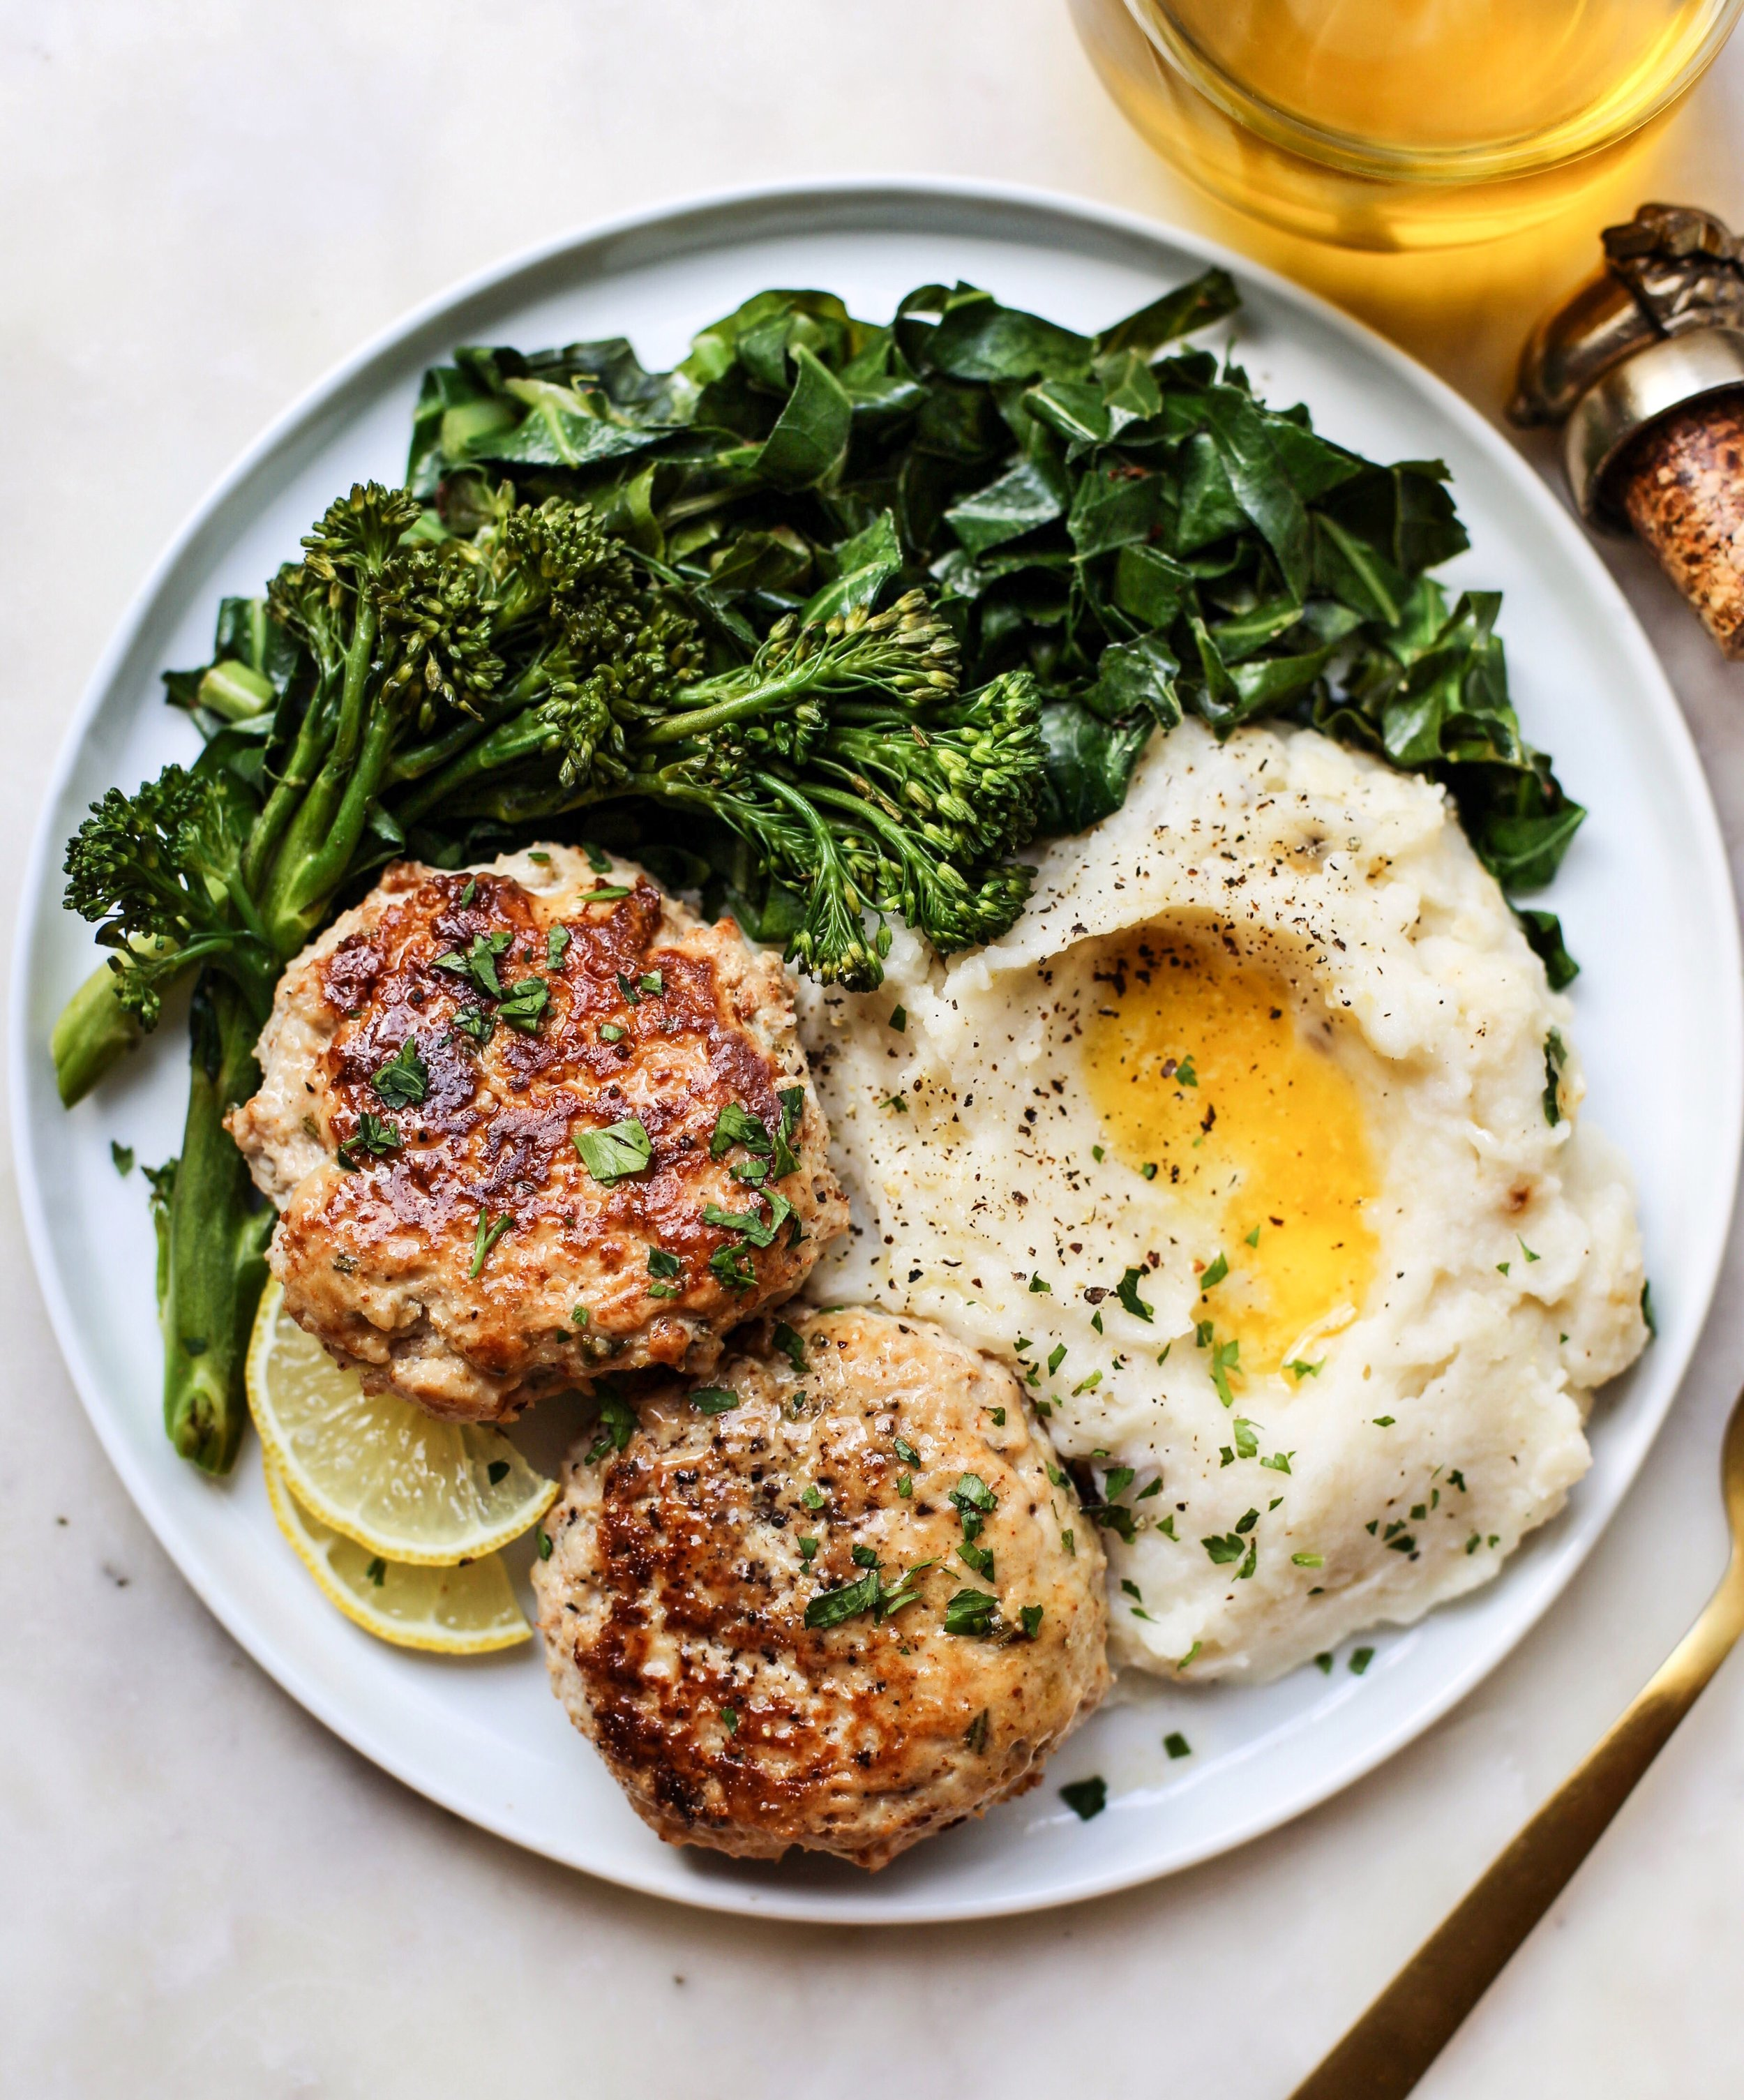 Chicken Patties with Rosemary and Lemon.